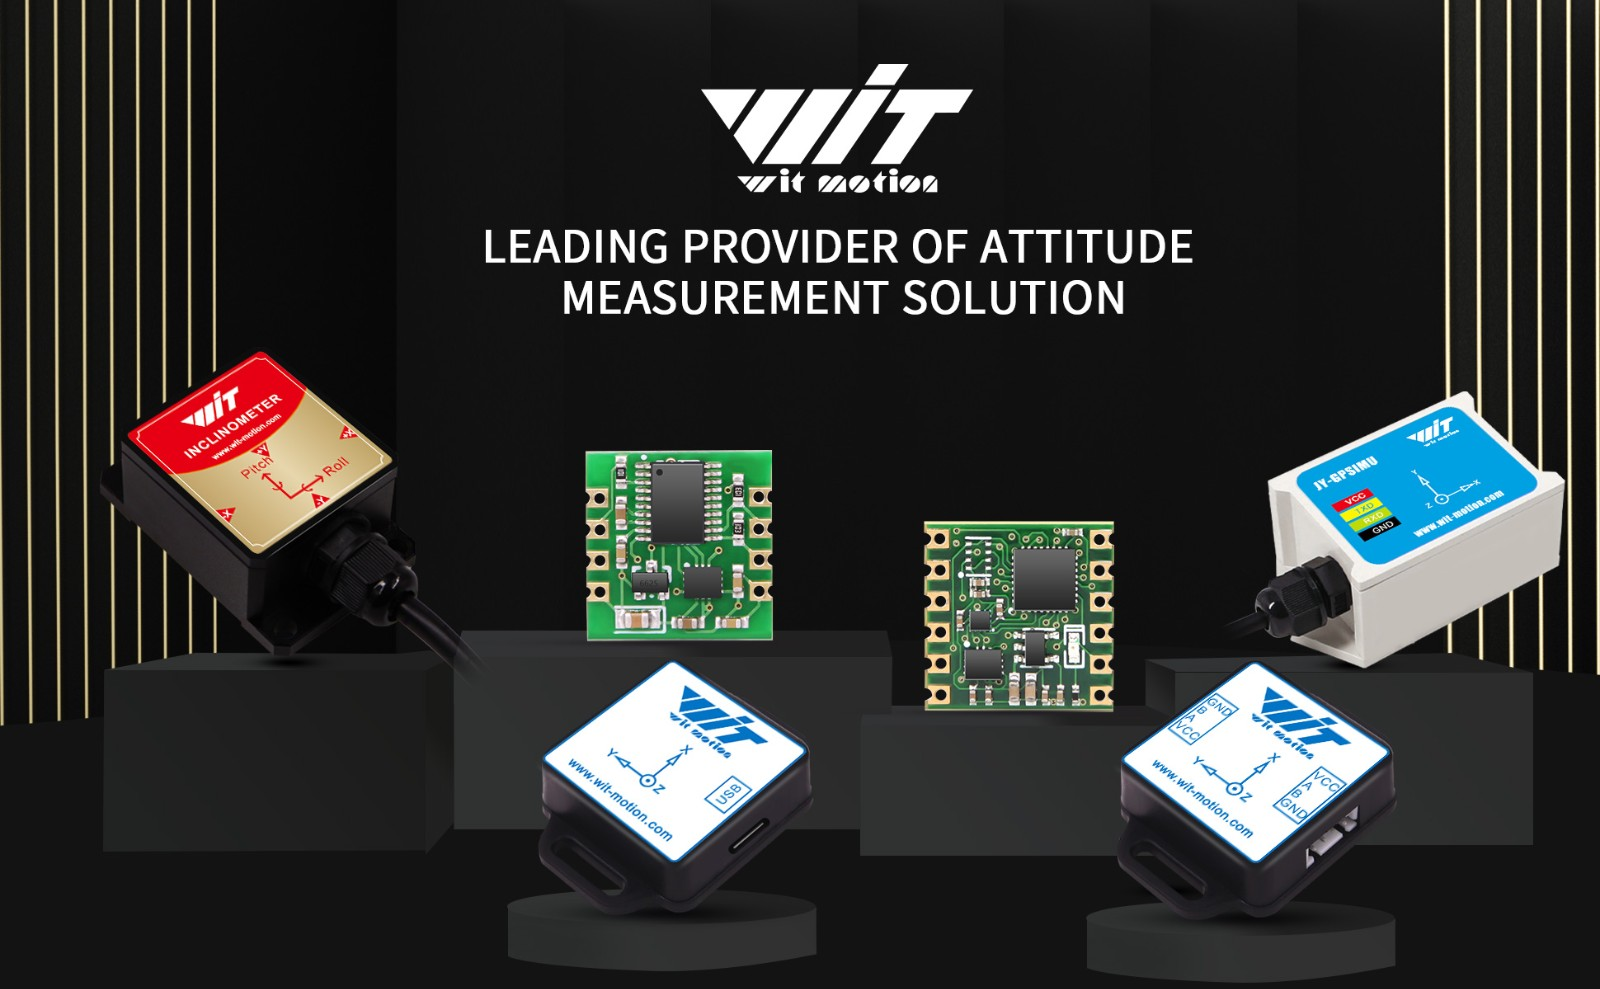 WitMotion WT61C RS232 AHRS 6 Axis Sensor Tilt Angle Inclinometer (Roll Pitch)   Accelerometer   Gyroscope MPU-6050 For PC/Android/MCU